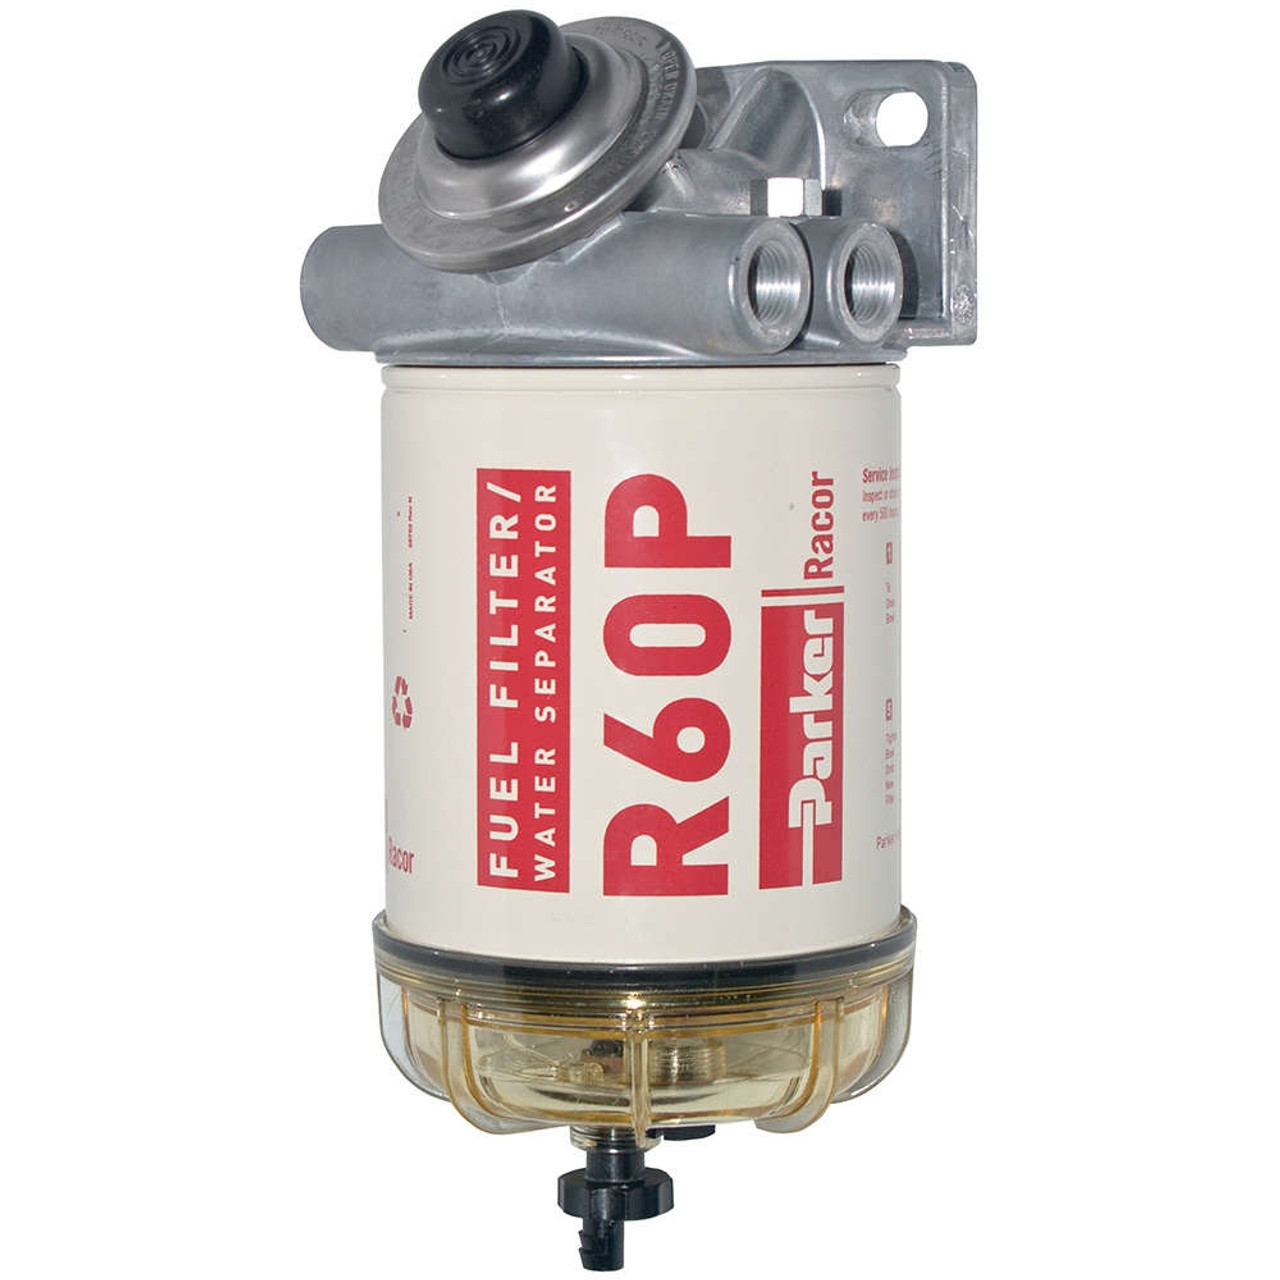 racor 400 series 60 gph diesel spin-on fuel filter - 30 micron - 6